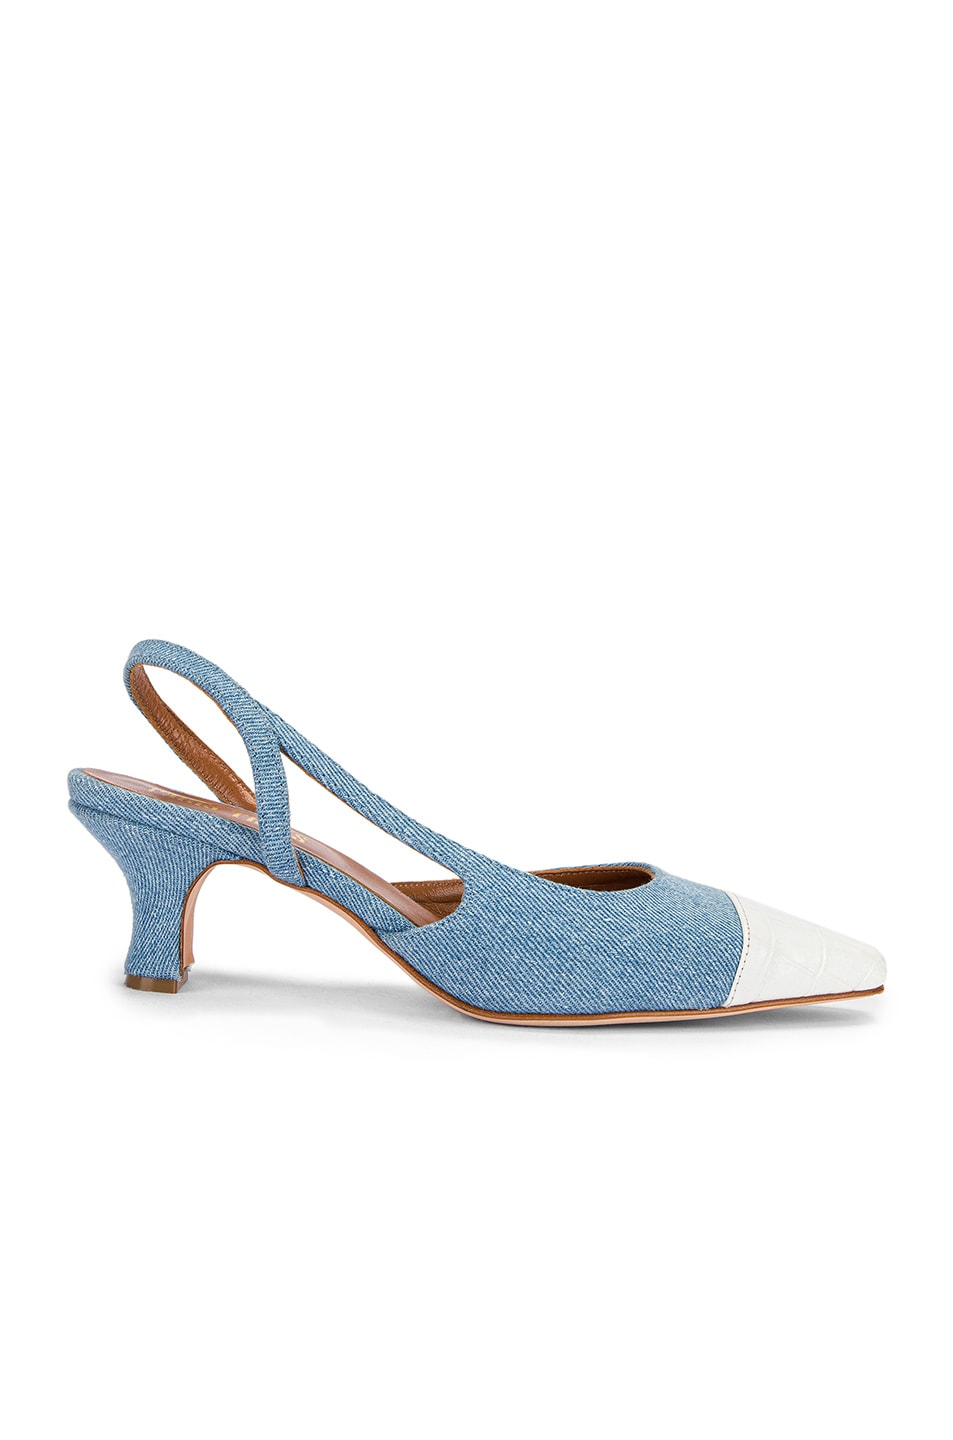 Image 1 of Paris Texas Denim and Moc Croco Slingback in Denim